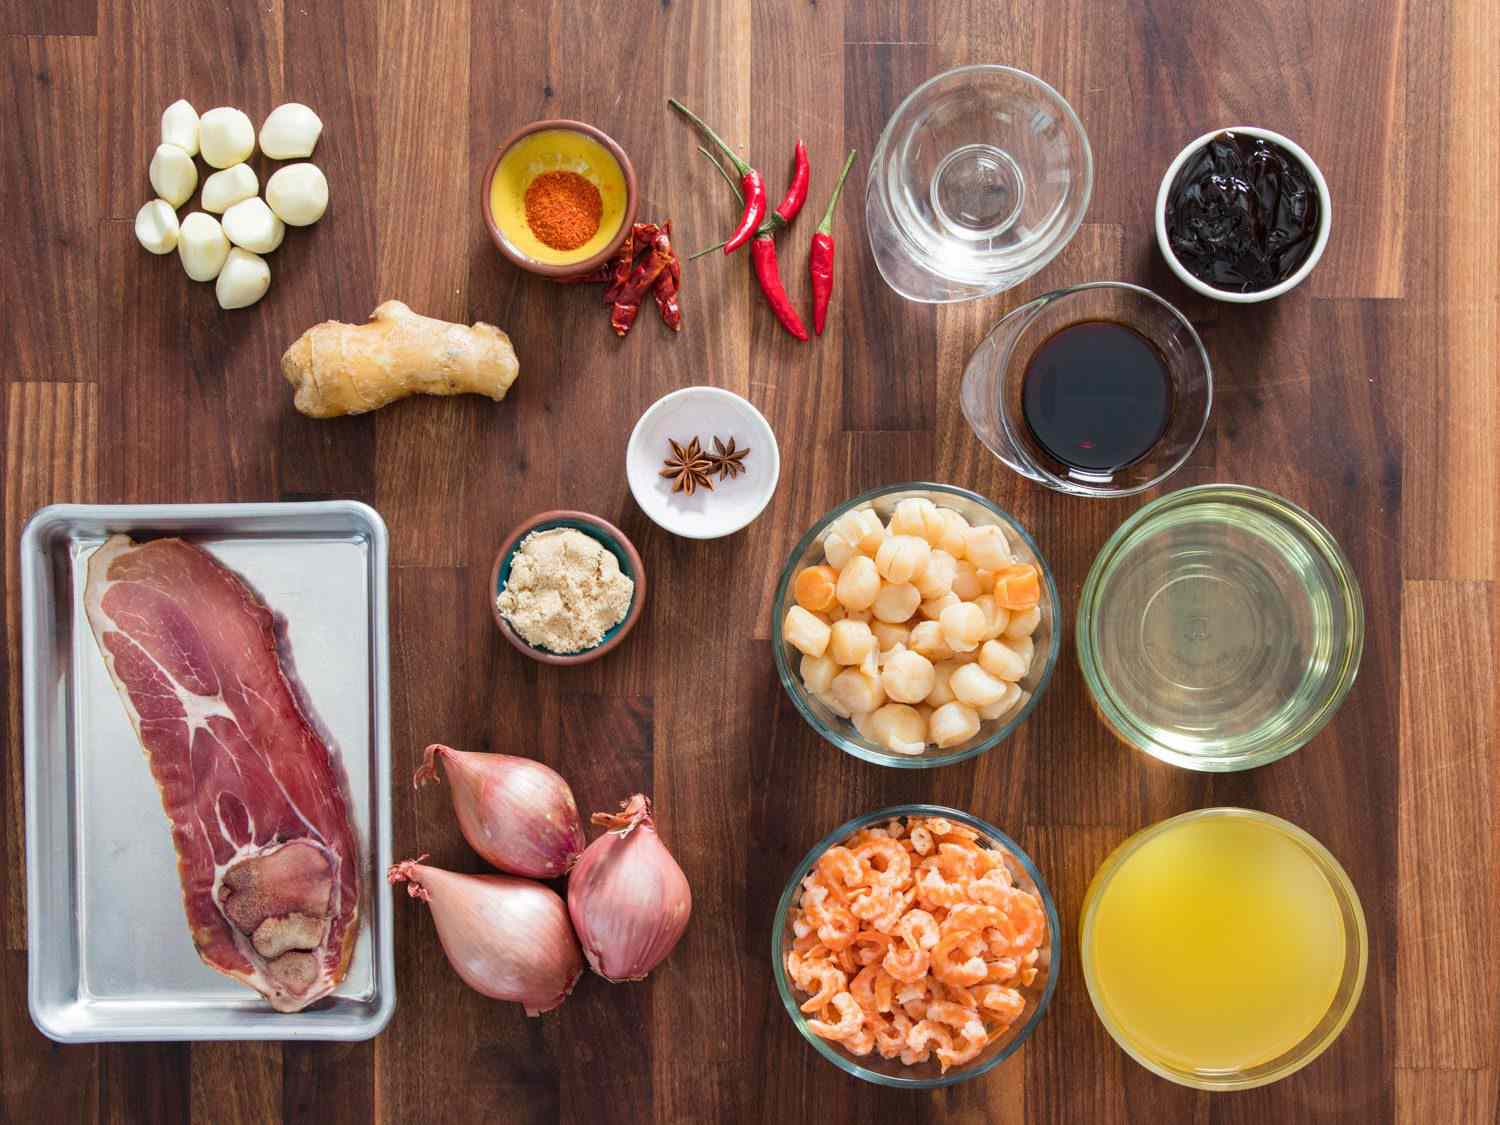 Ingredients for XO sauce.